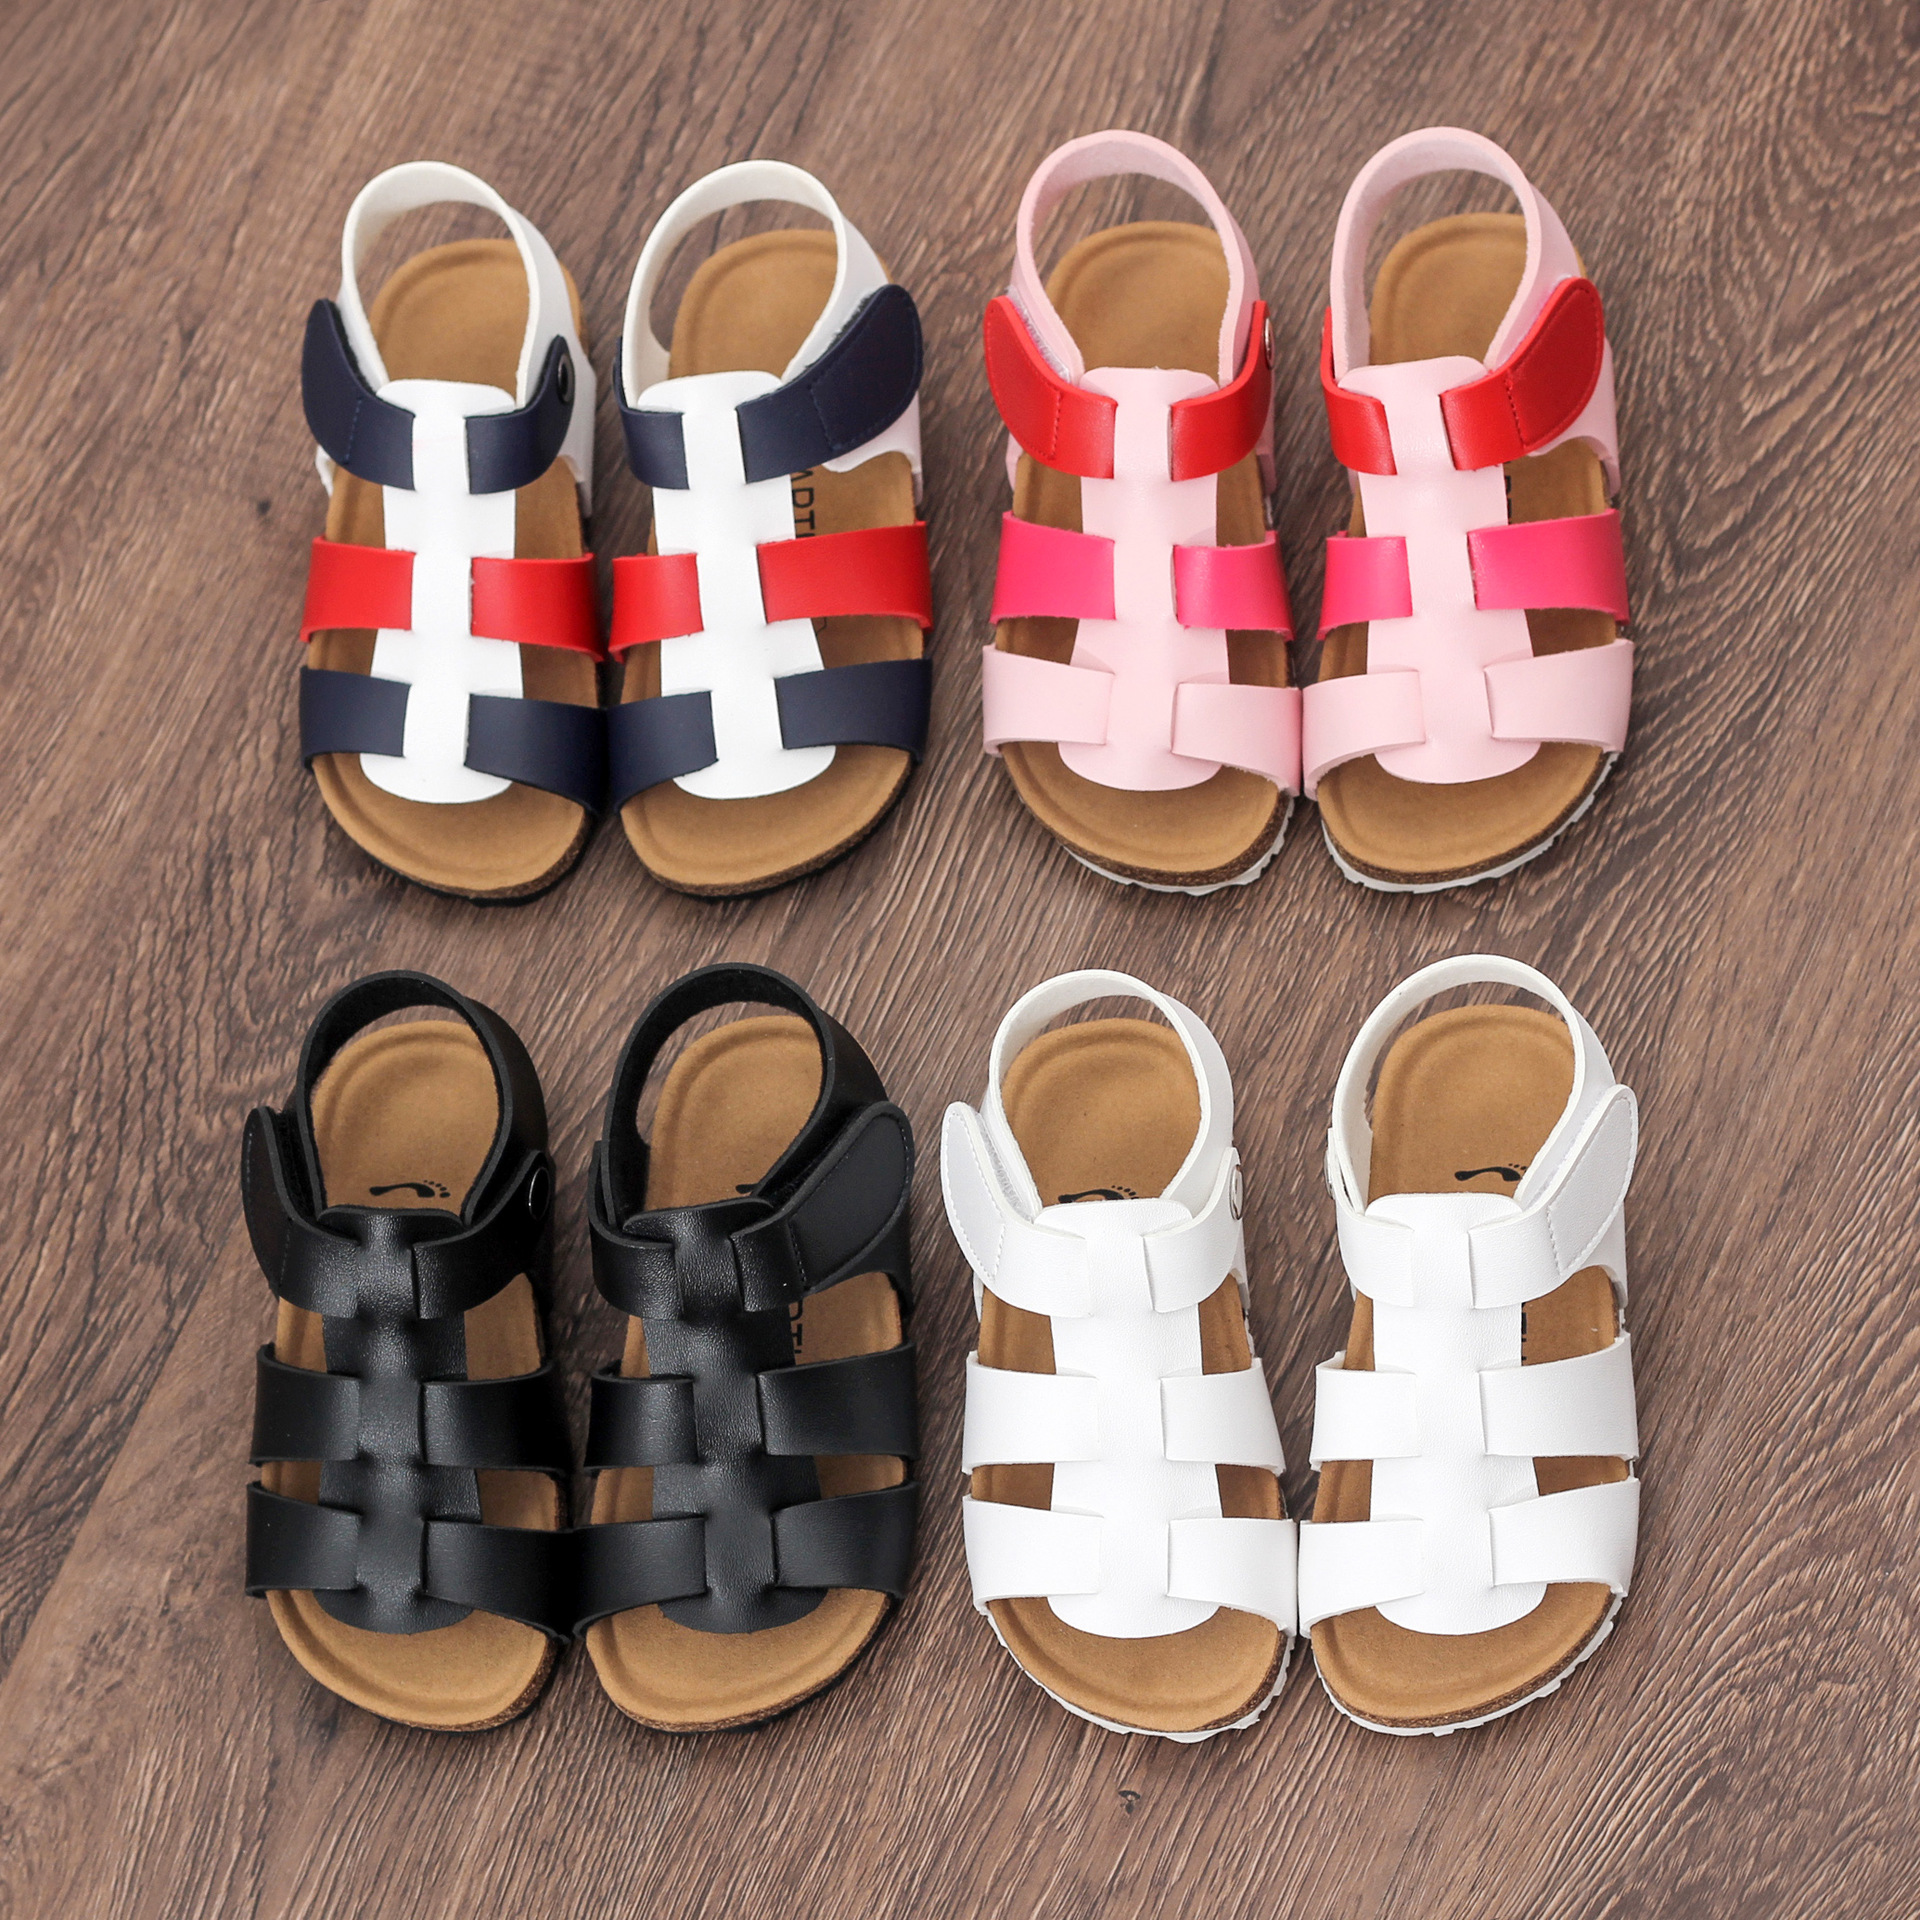 LARTUS Childrens Shoes New Girls Sandals Open Toe Shoes Fashion Roman  Gladiator Sandals Boys Girls Mixed Color Cork Shoes-in Sandals from Mother    Kids on ... 2e29df066477